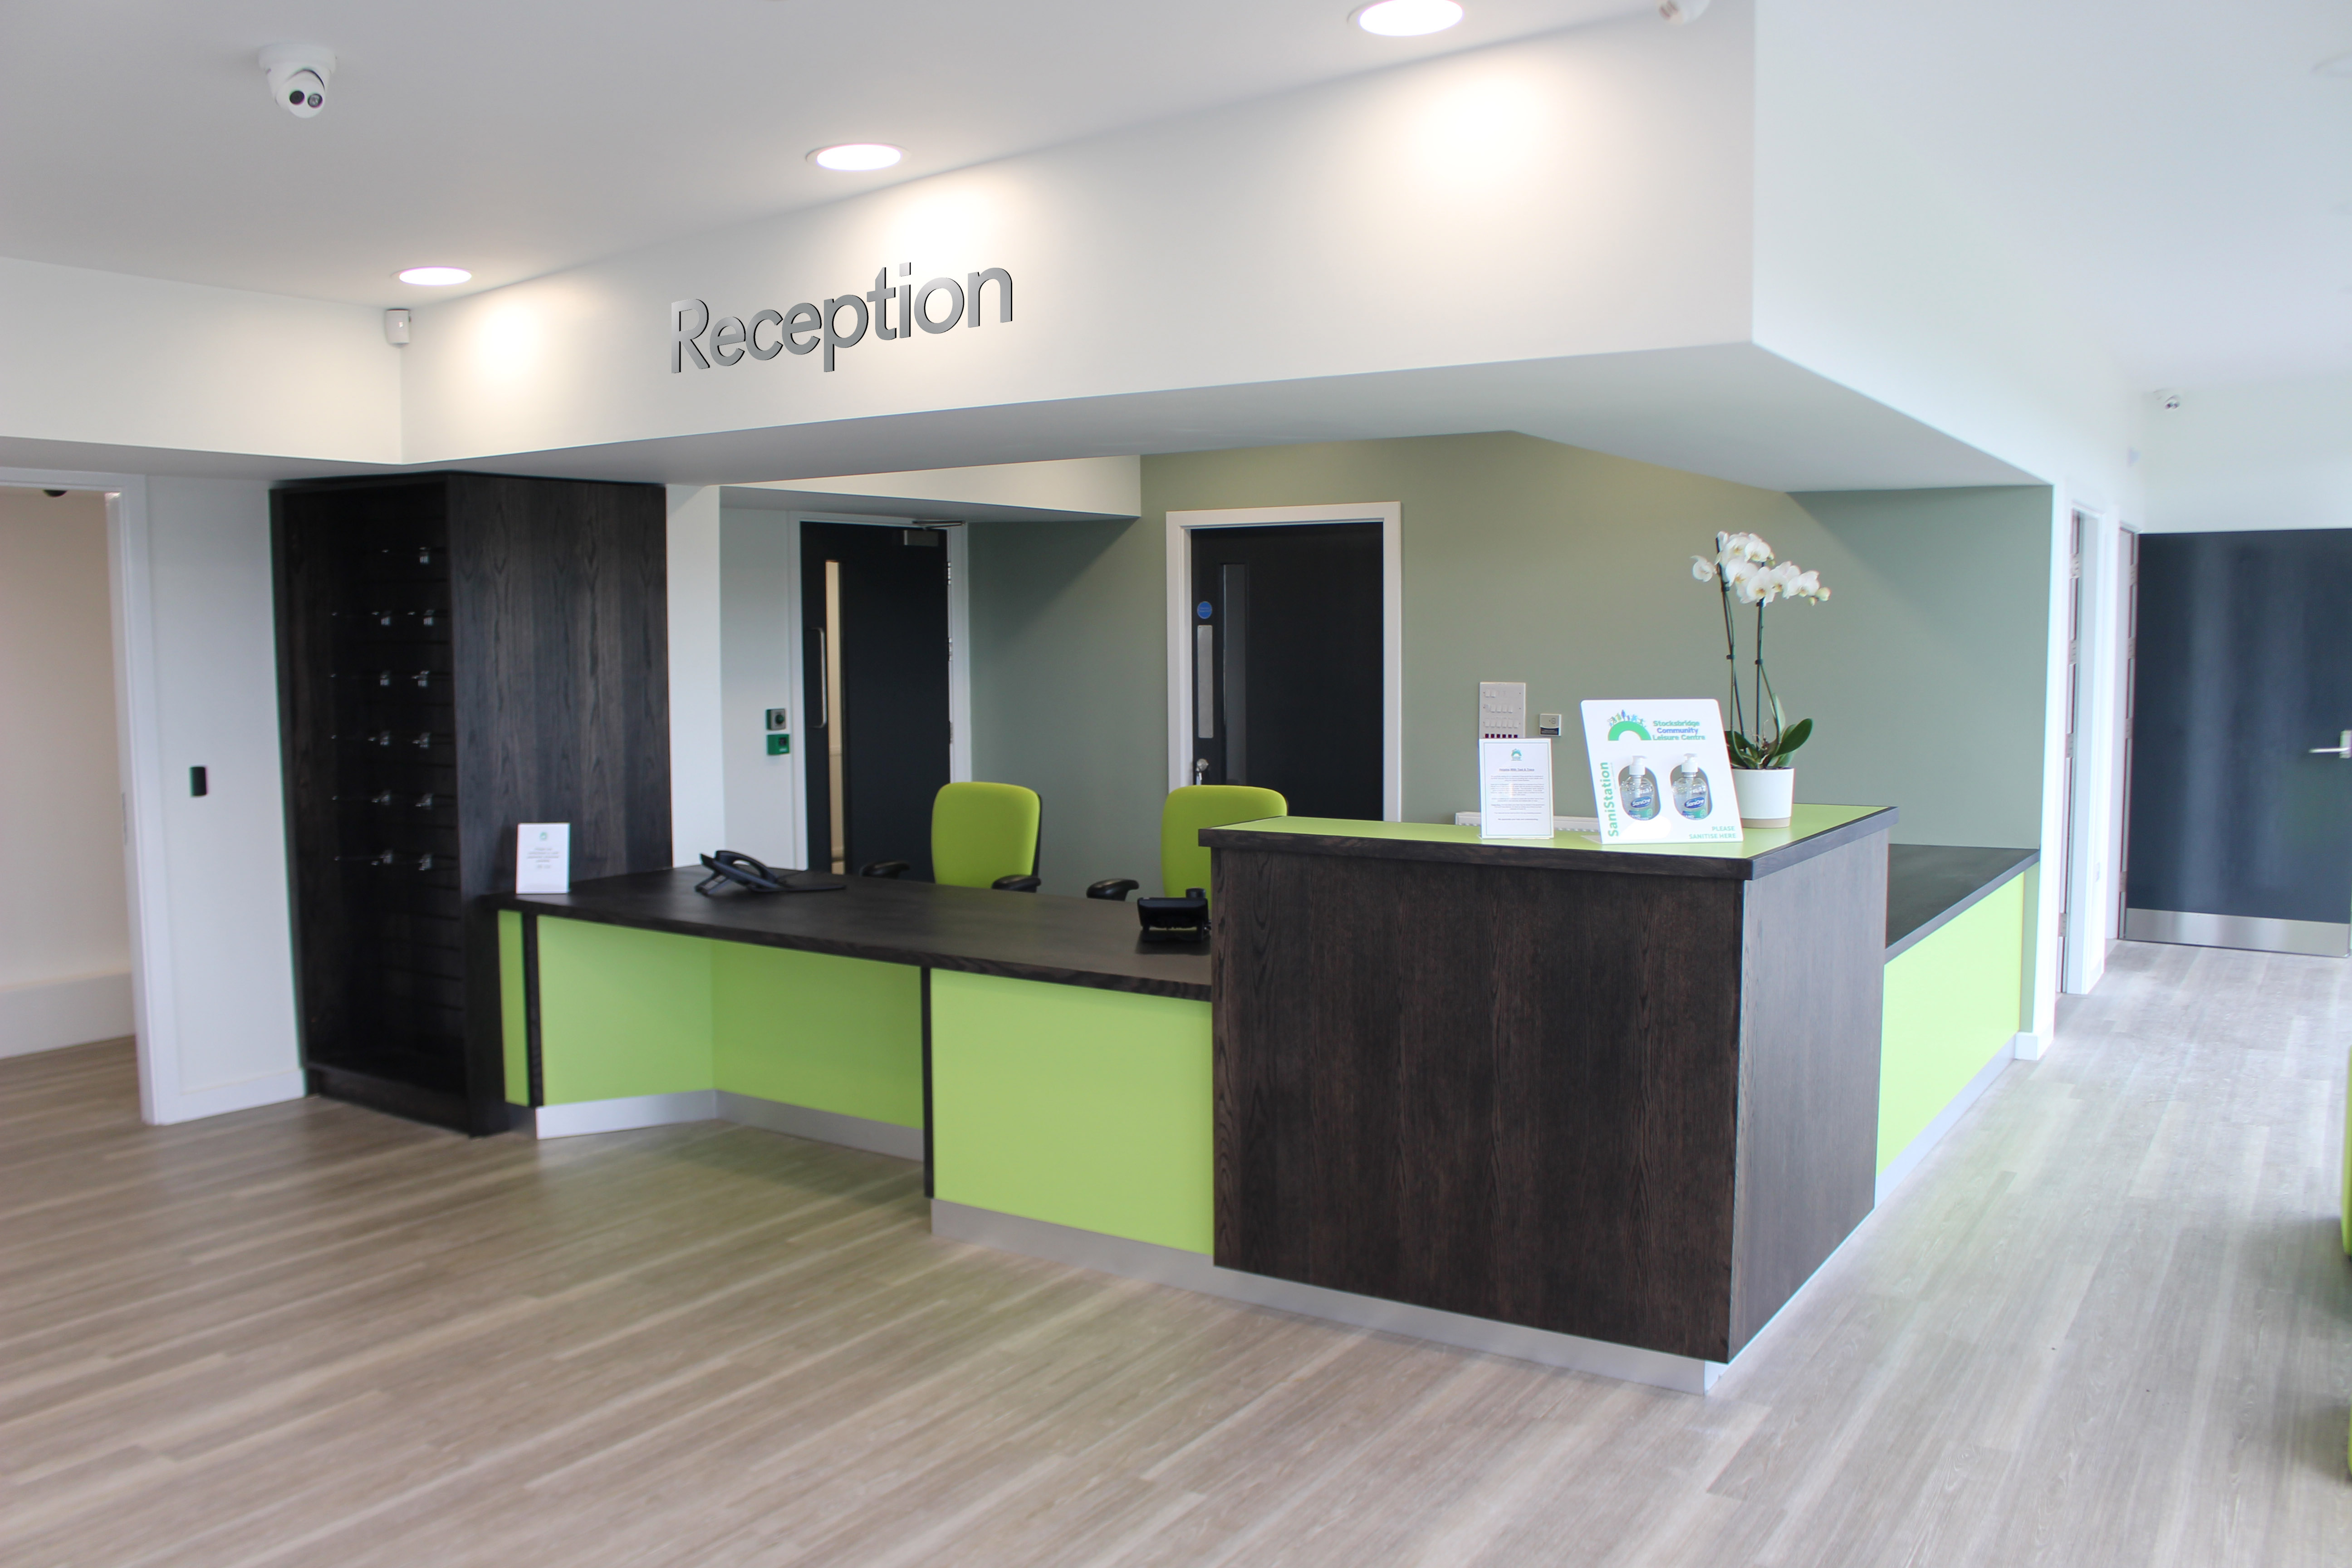 Stunning new reception area to welcome visitors